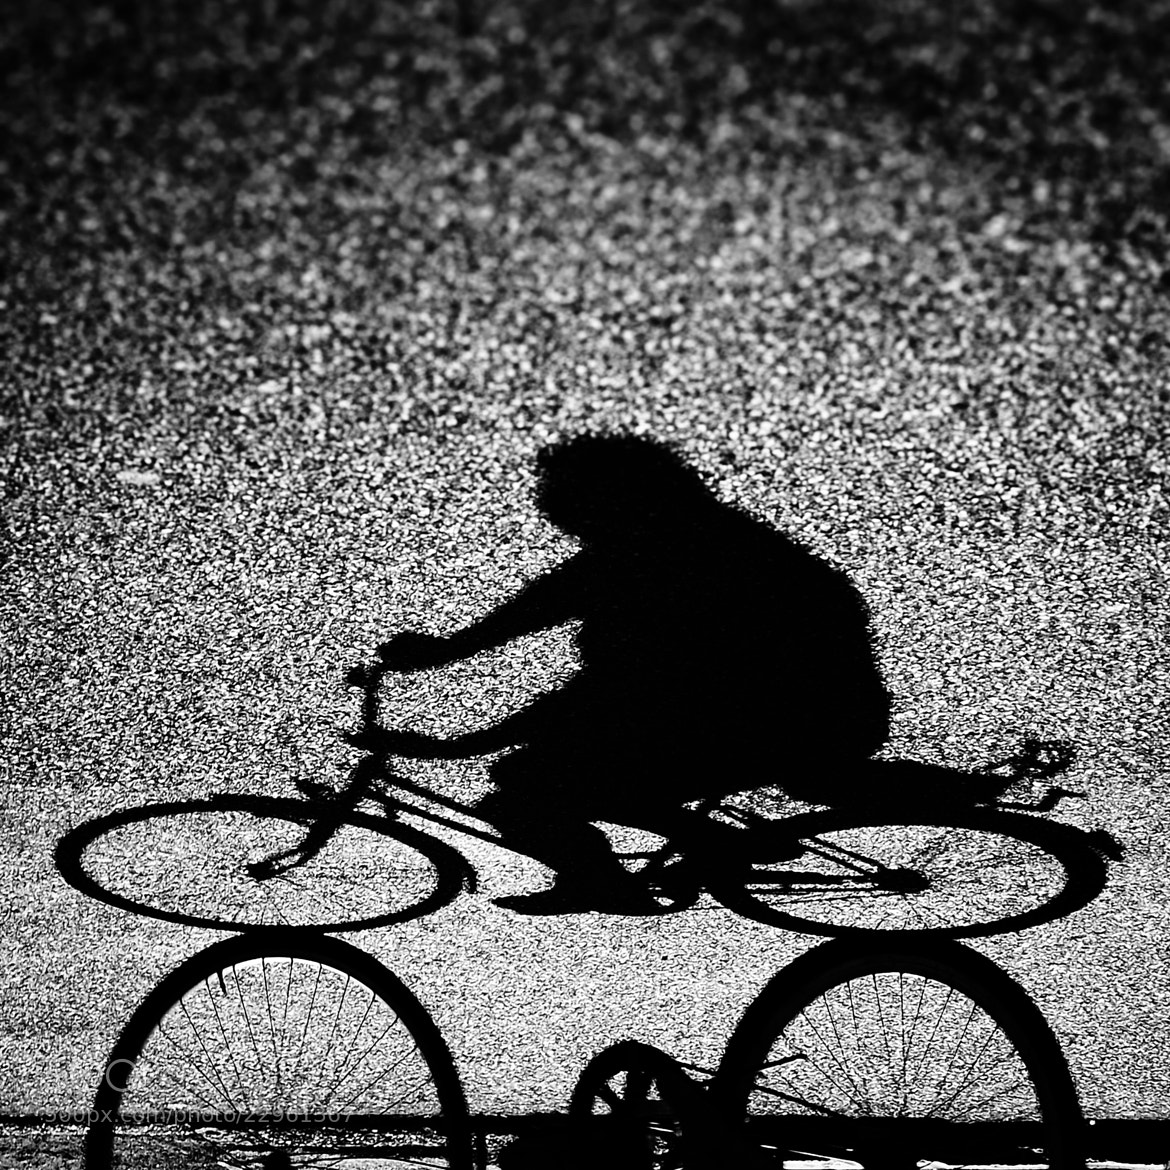 Photograph Biker by Martin Hricko on 500px